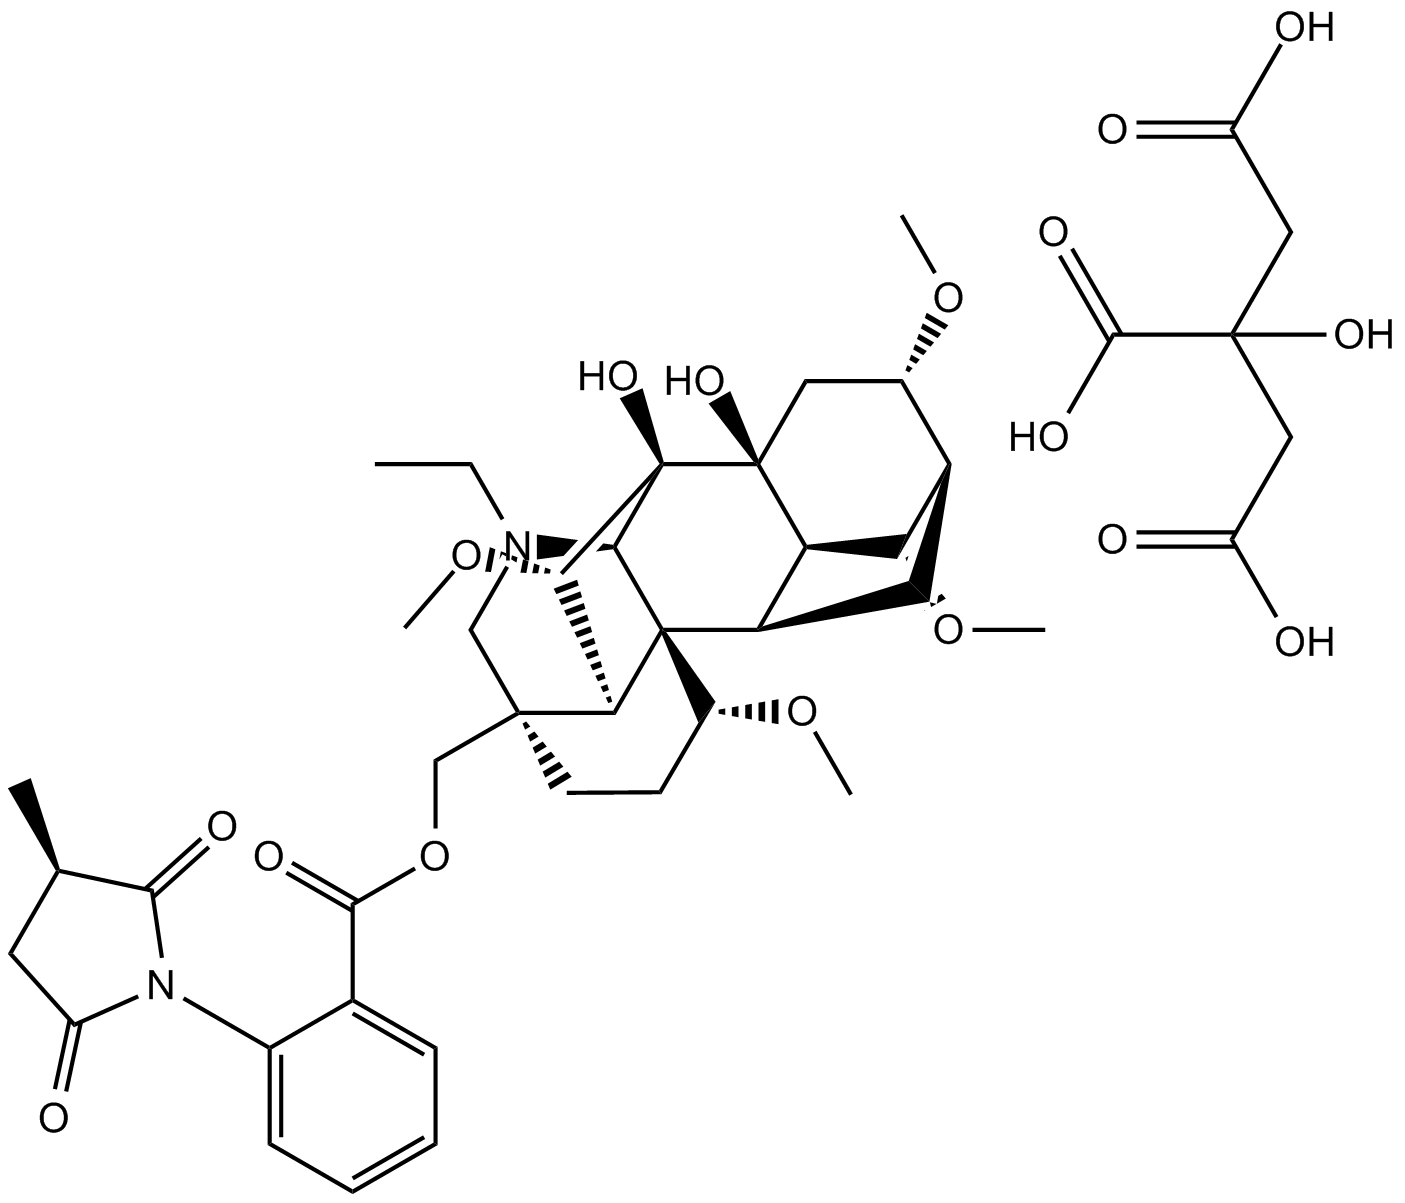 Methyllycaconitine citrate